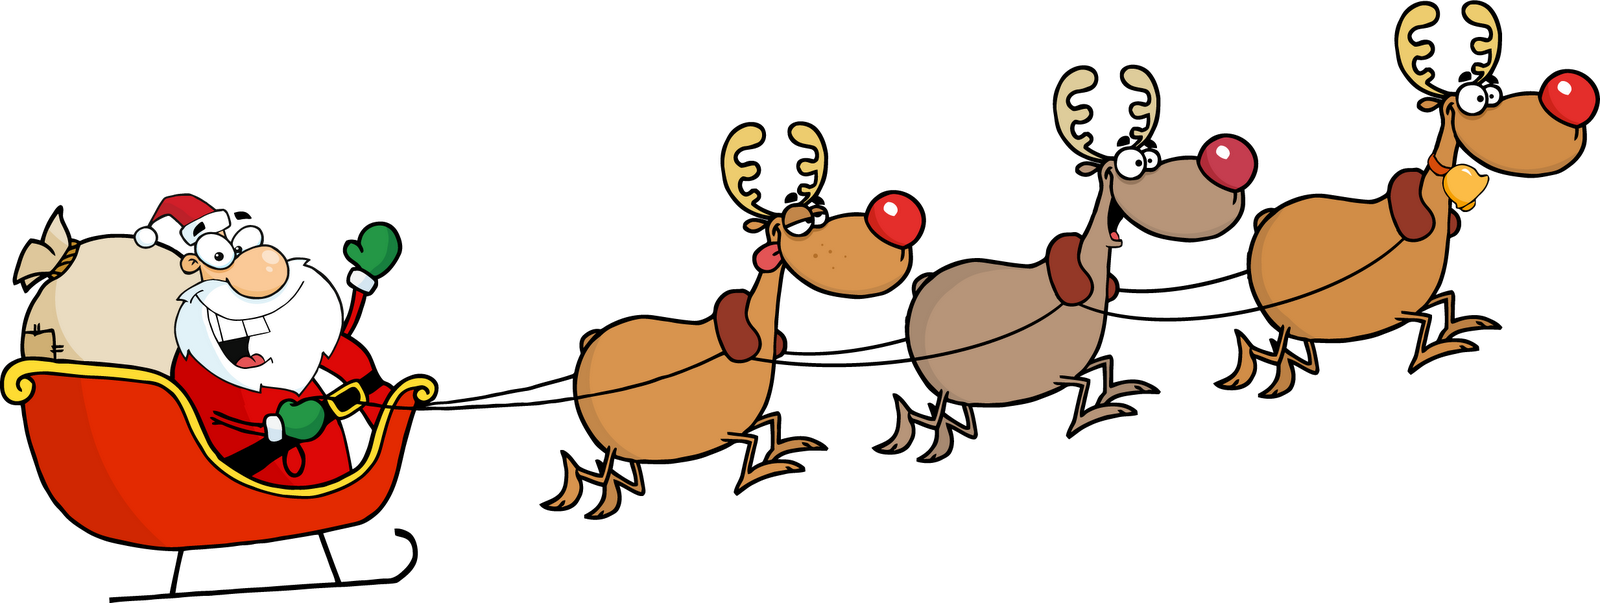 Santa and reindeer gif. Win clipart fenetre